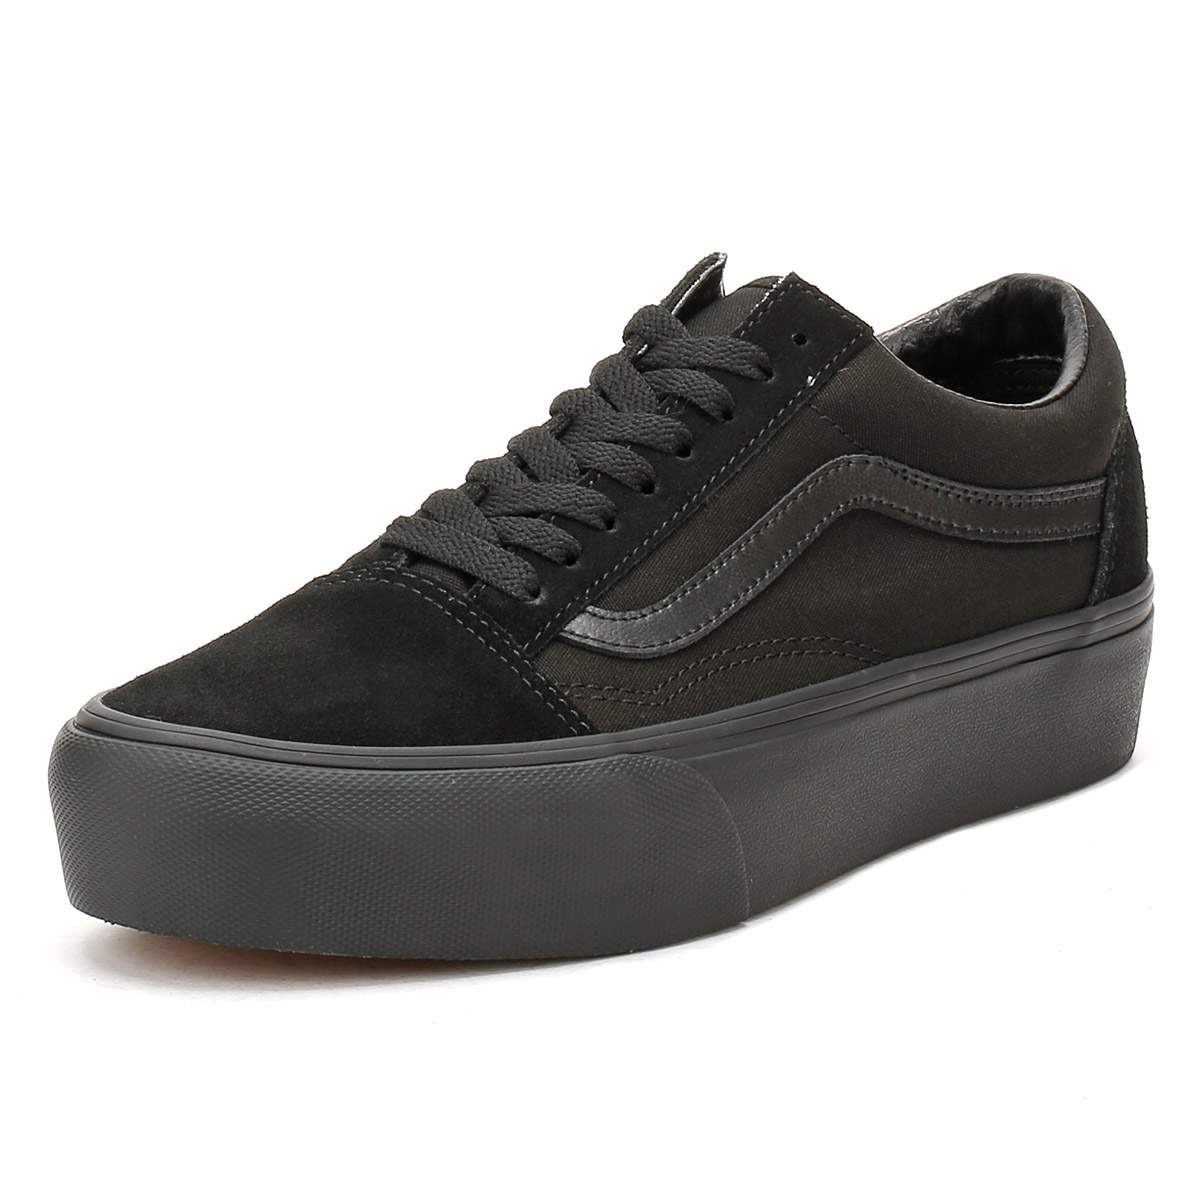 fd3d1ce07f4 Details about Vans Womens All Black Old Skool Platform Trainers